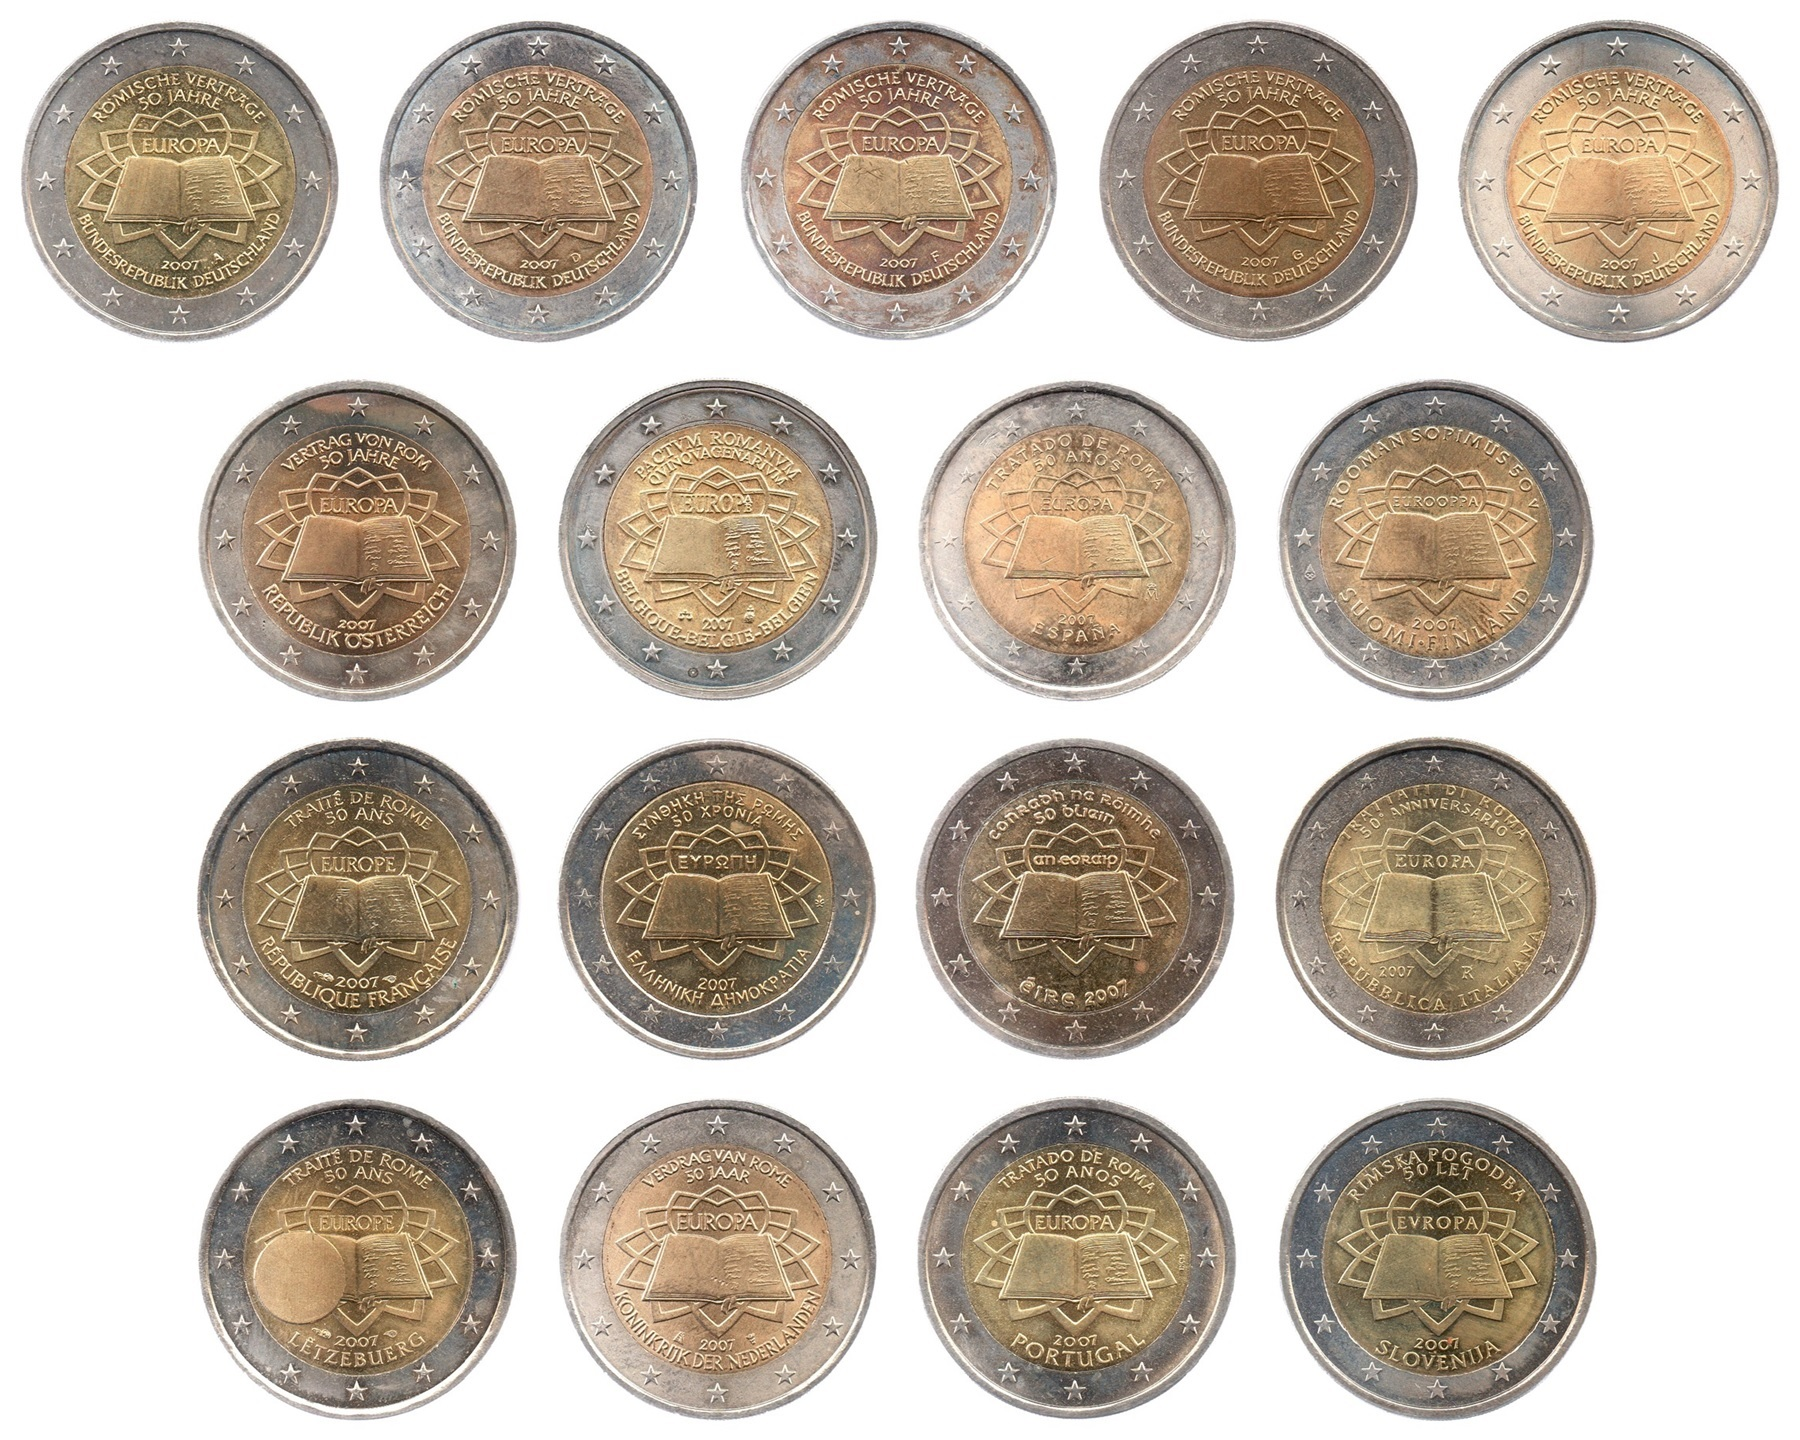 (LOT.134.200.2007.1.sup.à.spl.000000001) 2 euro 2007 - Treaty of Rome (complete series of 17 coins) Obverses (zoom)